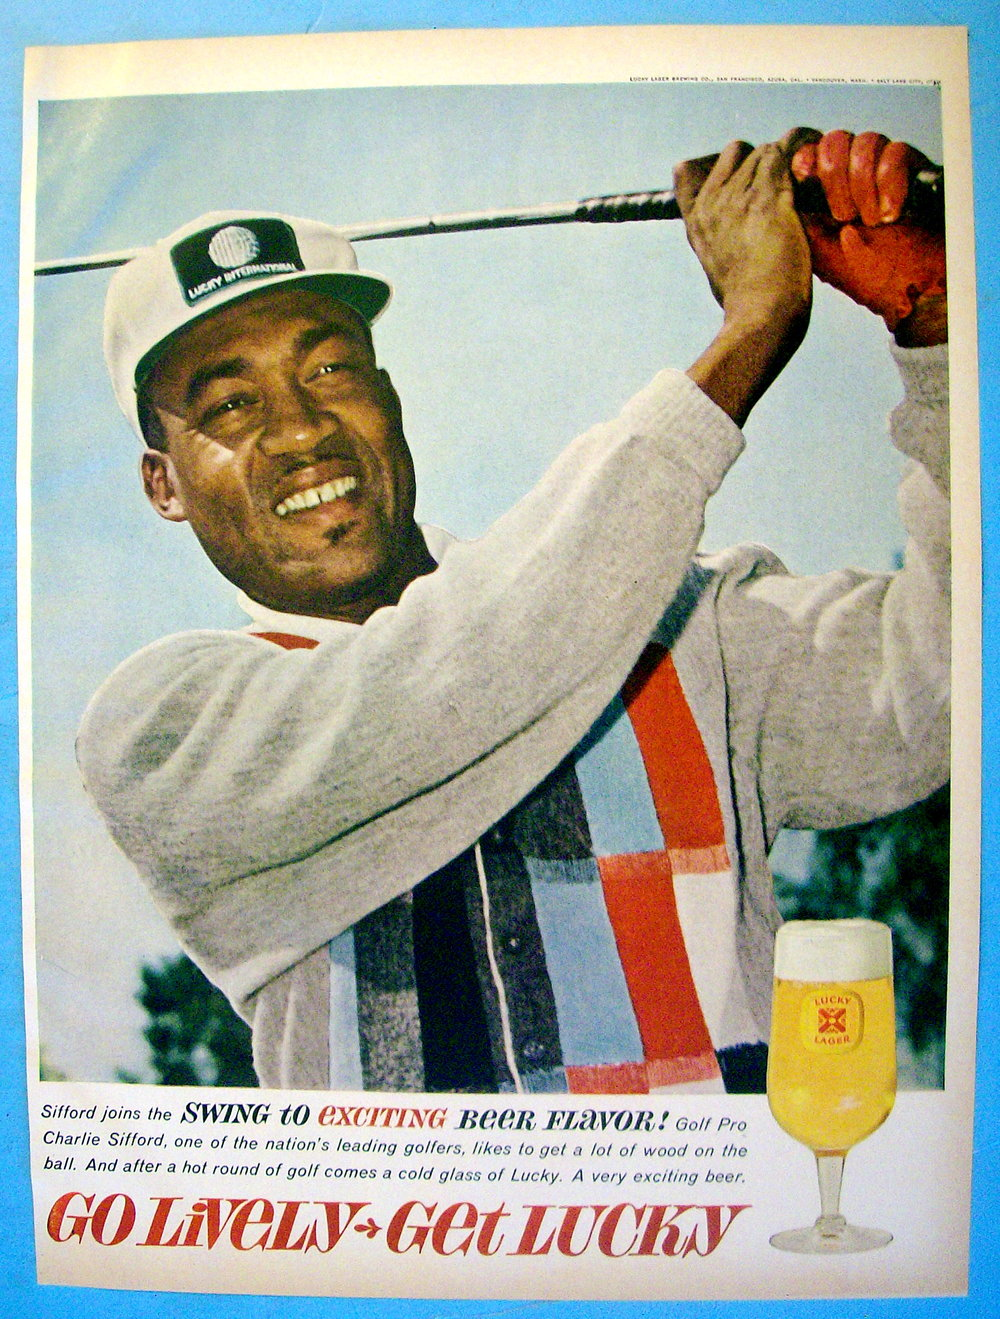 Charlie Sifford - Golf Legend